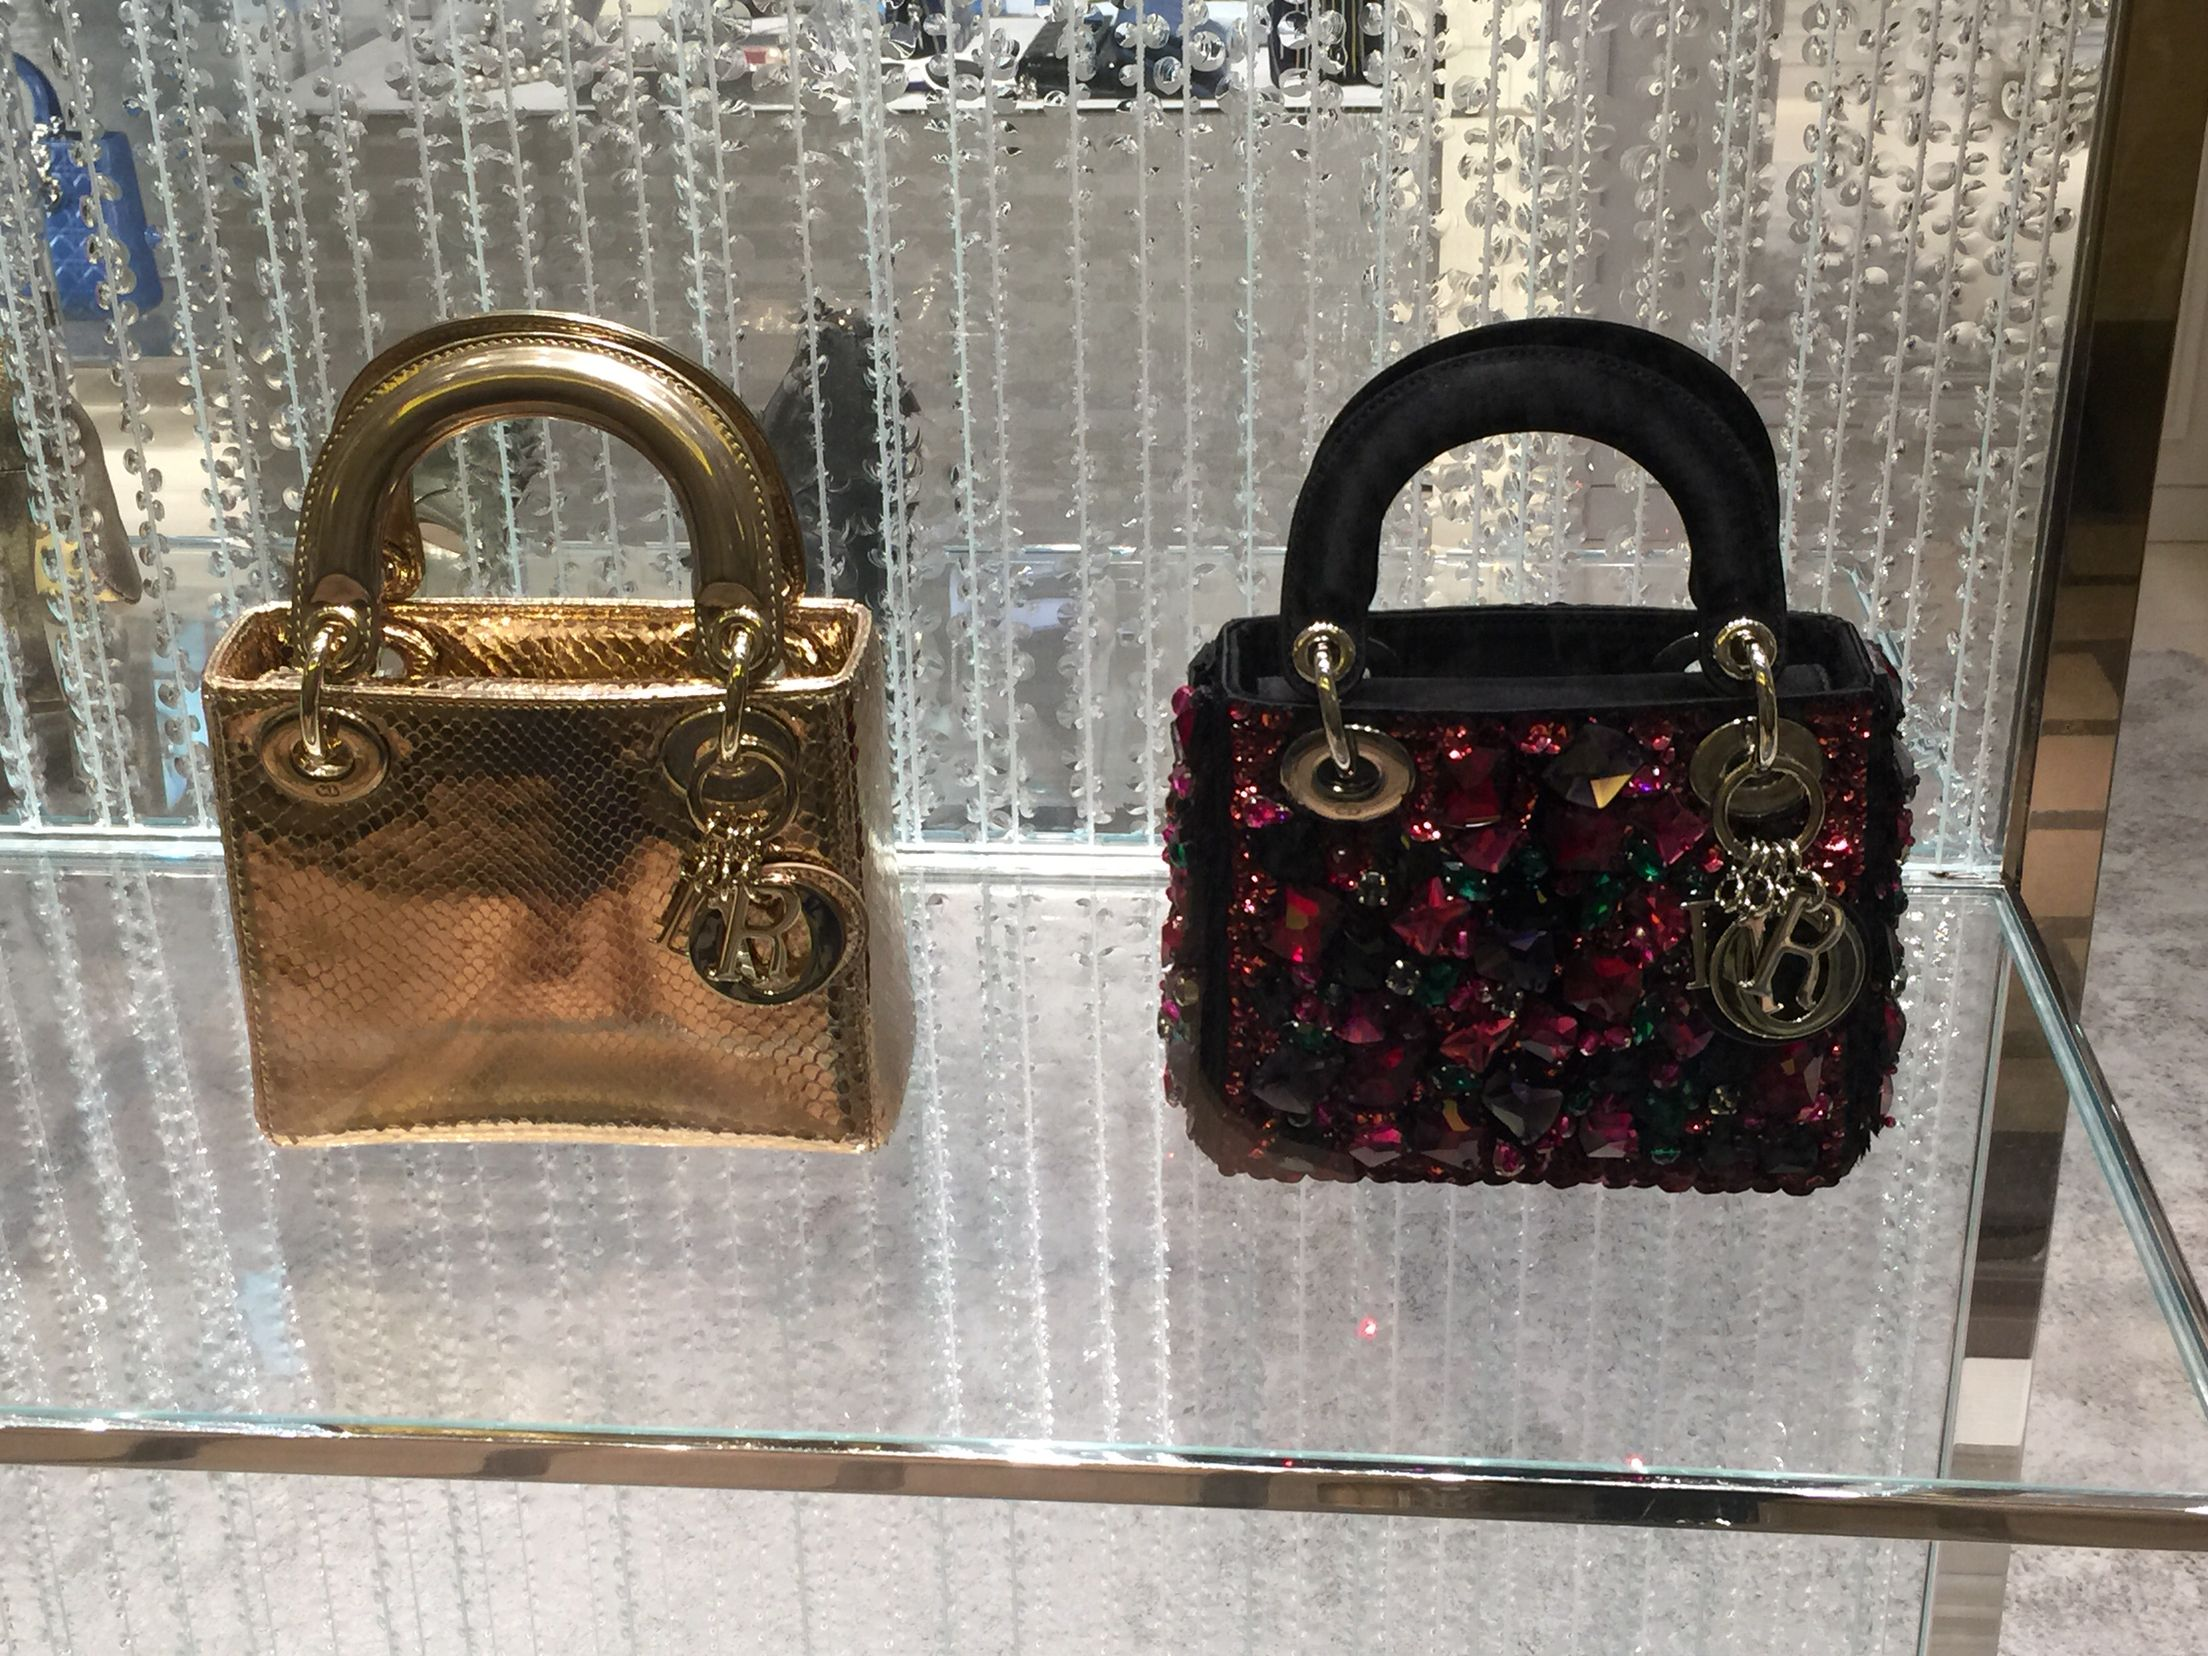 da2e4d034290 Lady Dior Micro Bag in Satin Embroidered with Jewels and the other in Gold  ❤ ❤️